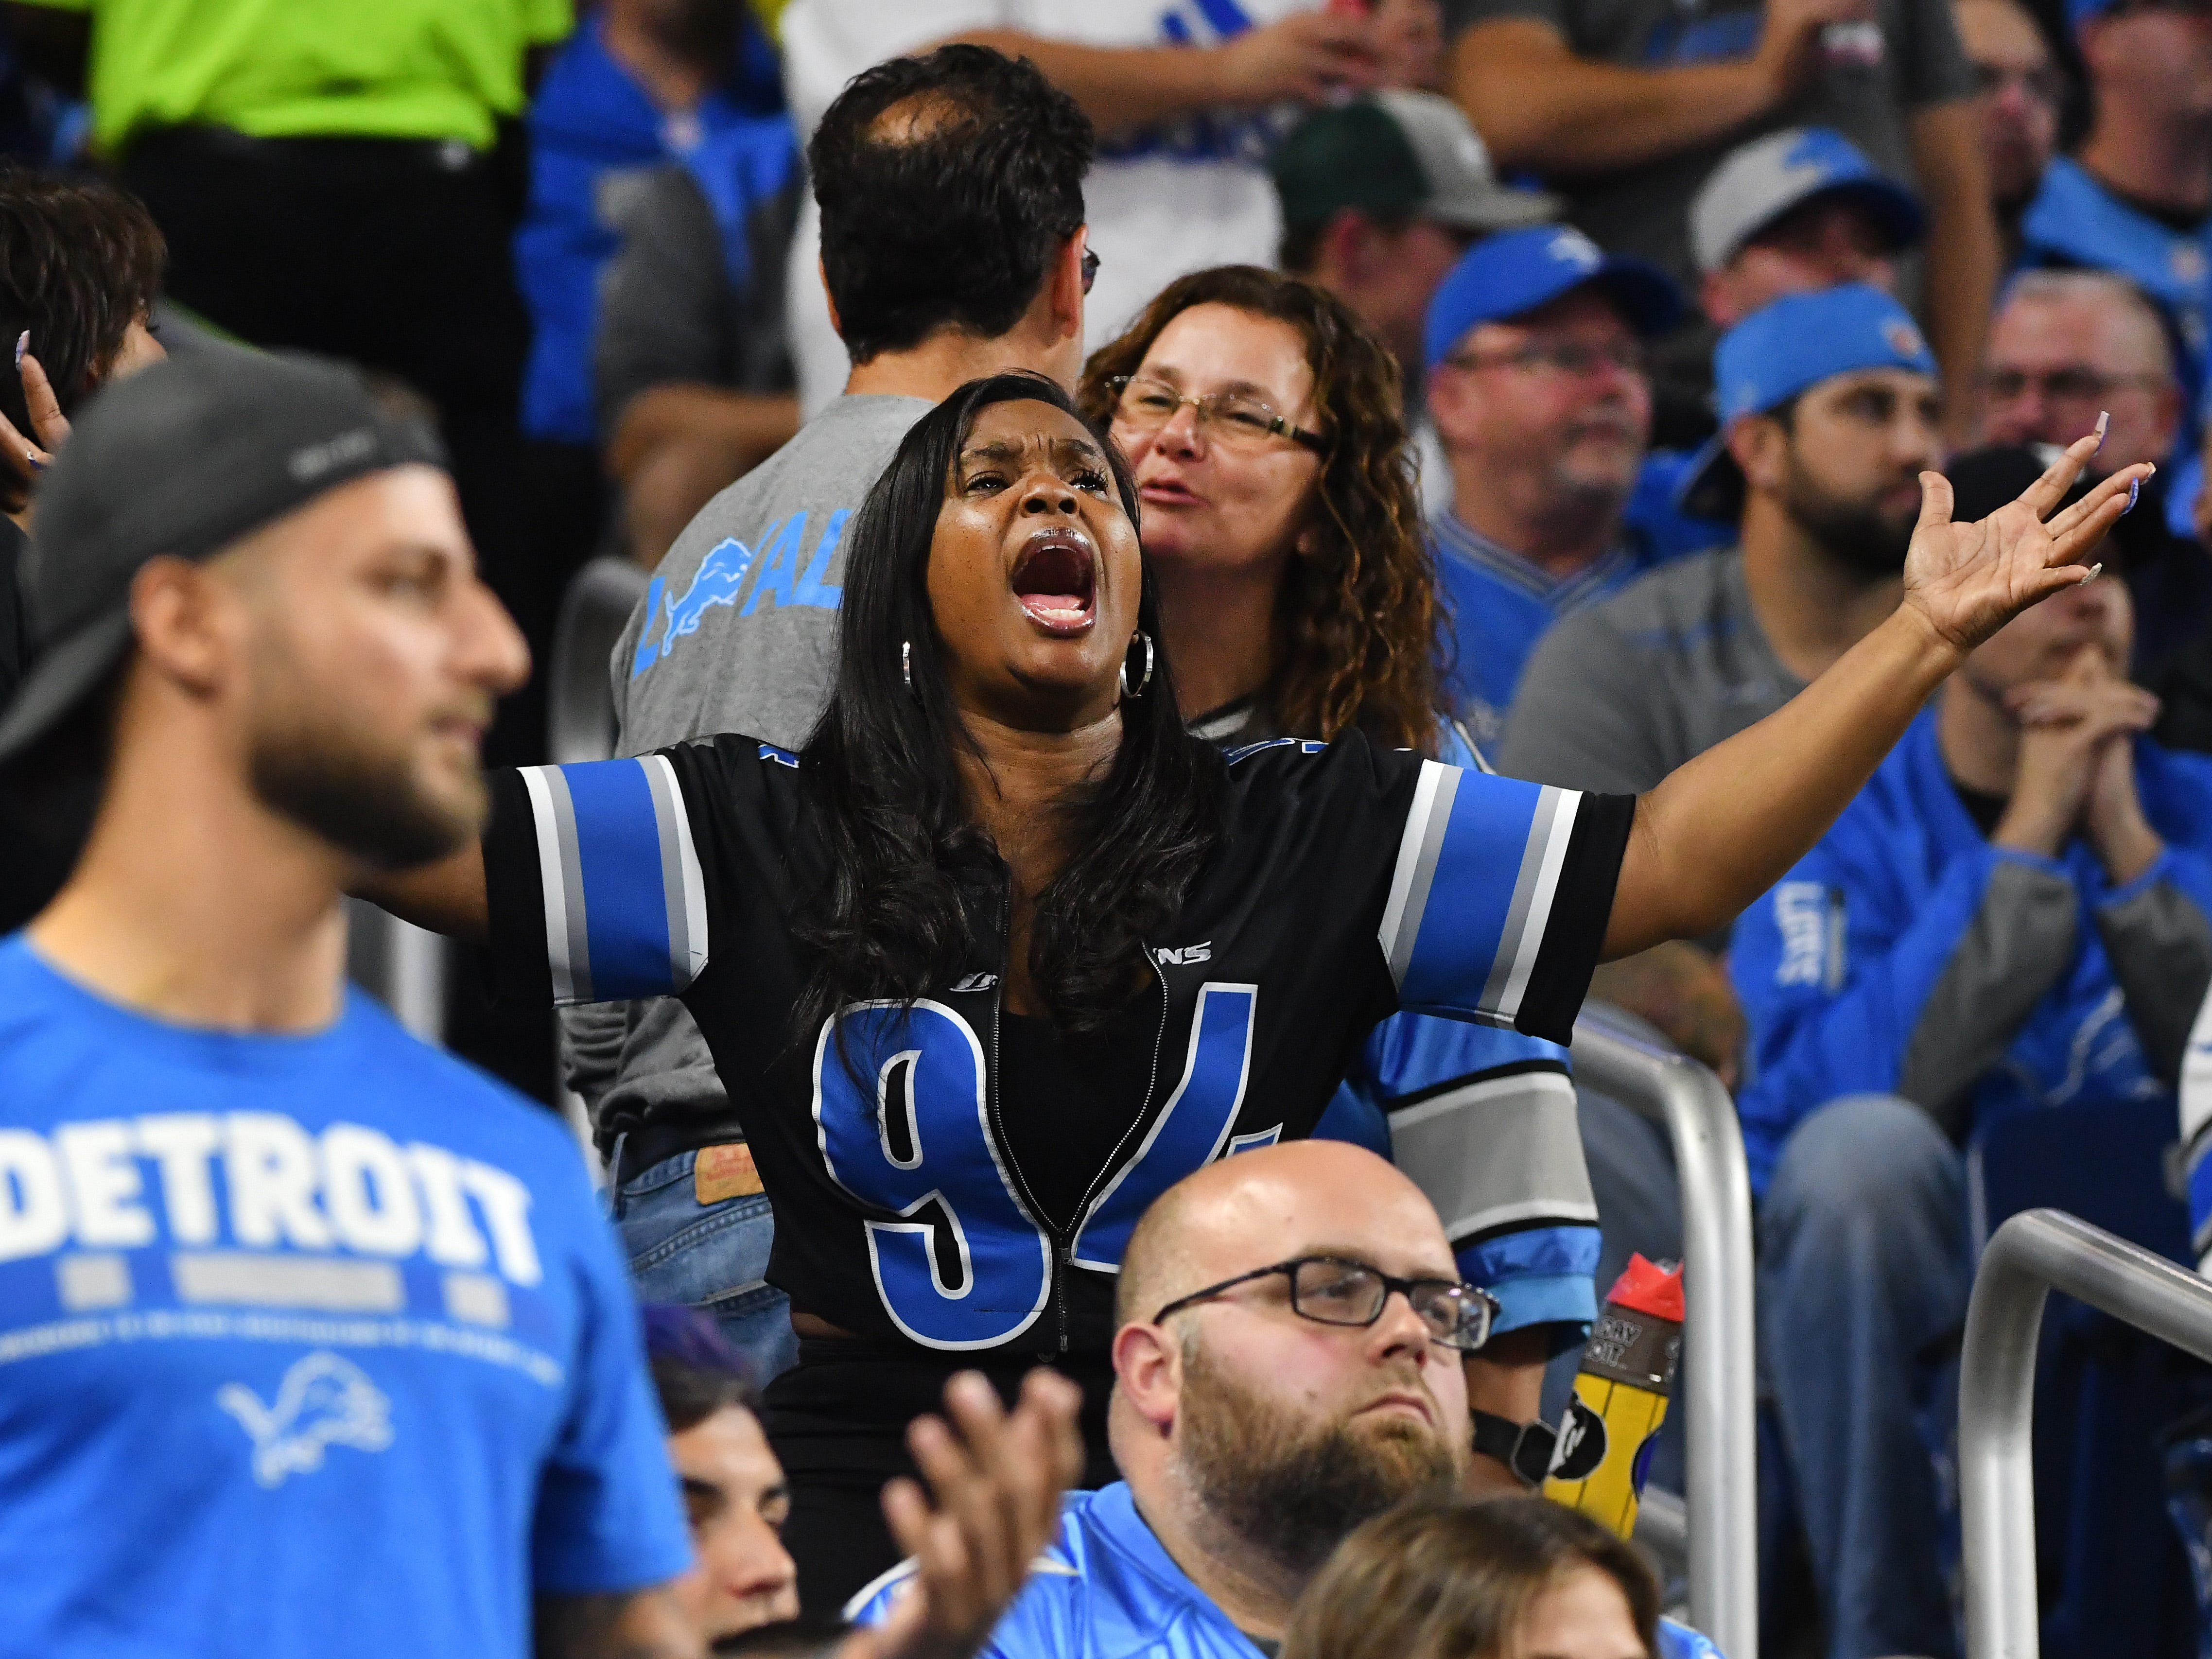 A Lions fan throws her hands as the Lions punt after another offensive drive stalls on the field in the second quarter.